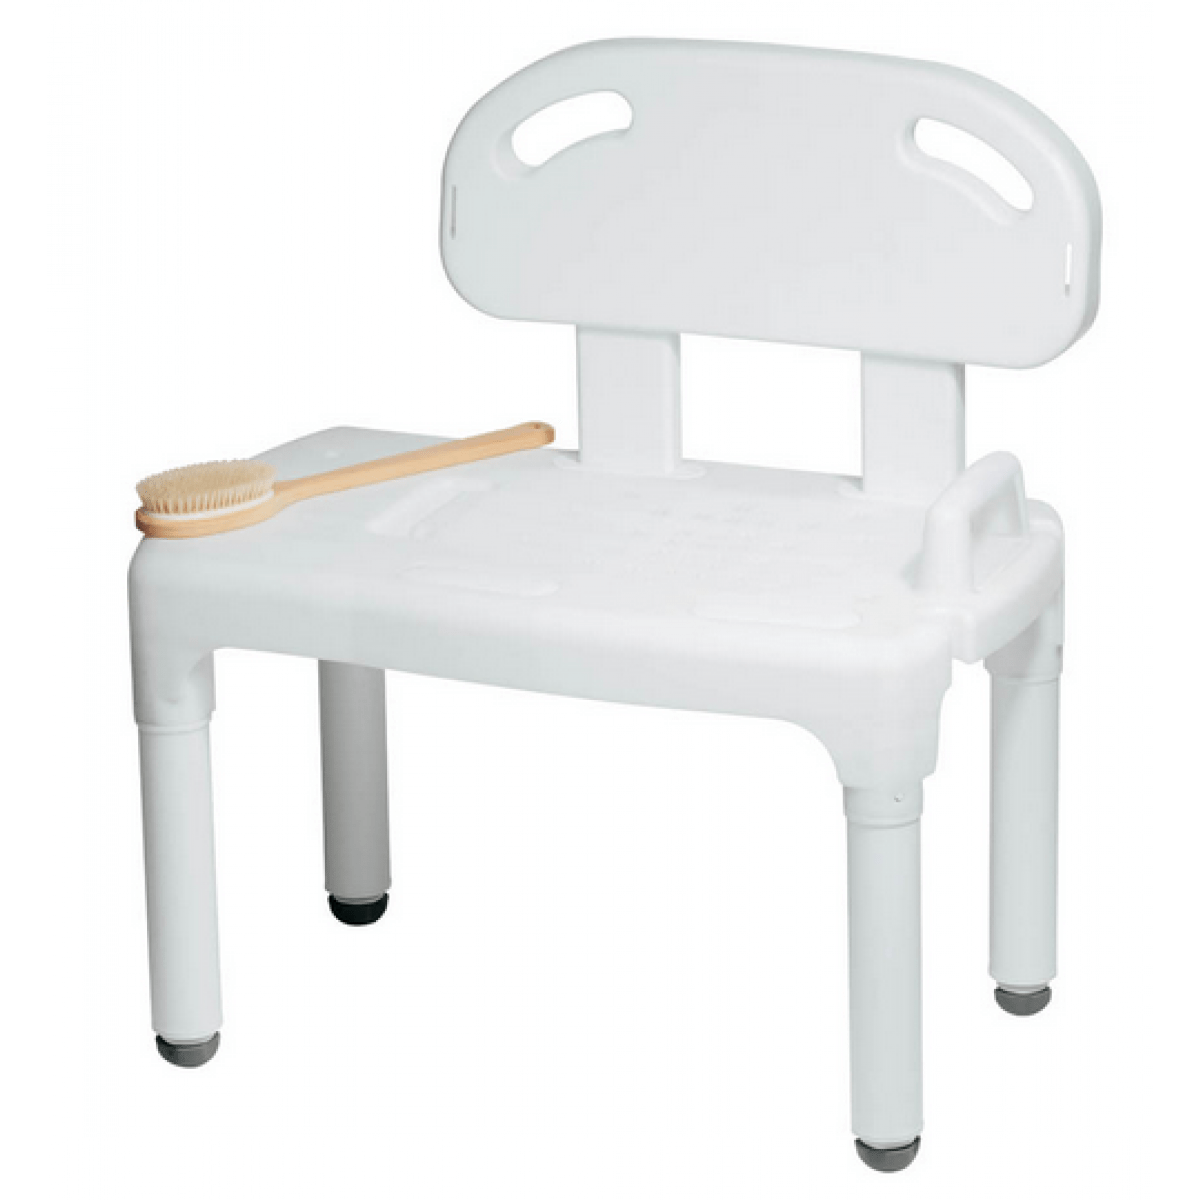 carex shower chair vinyl dining covers universal transfer bench on sale with unbeatable prices